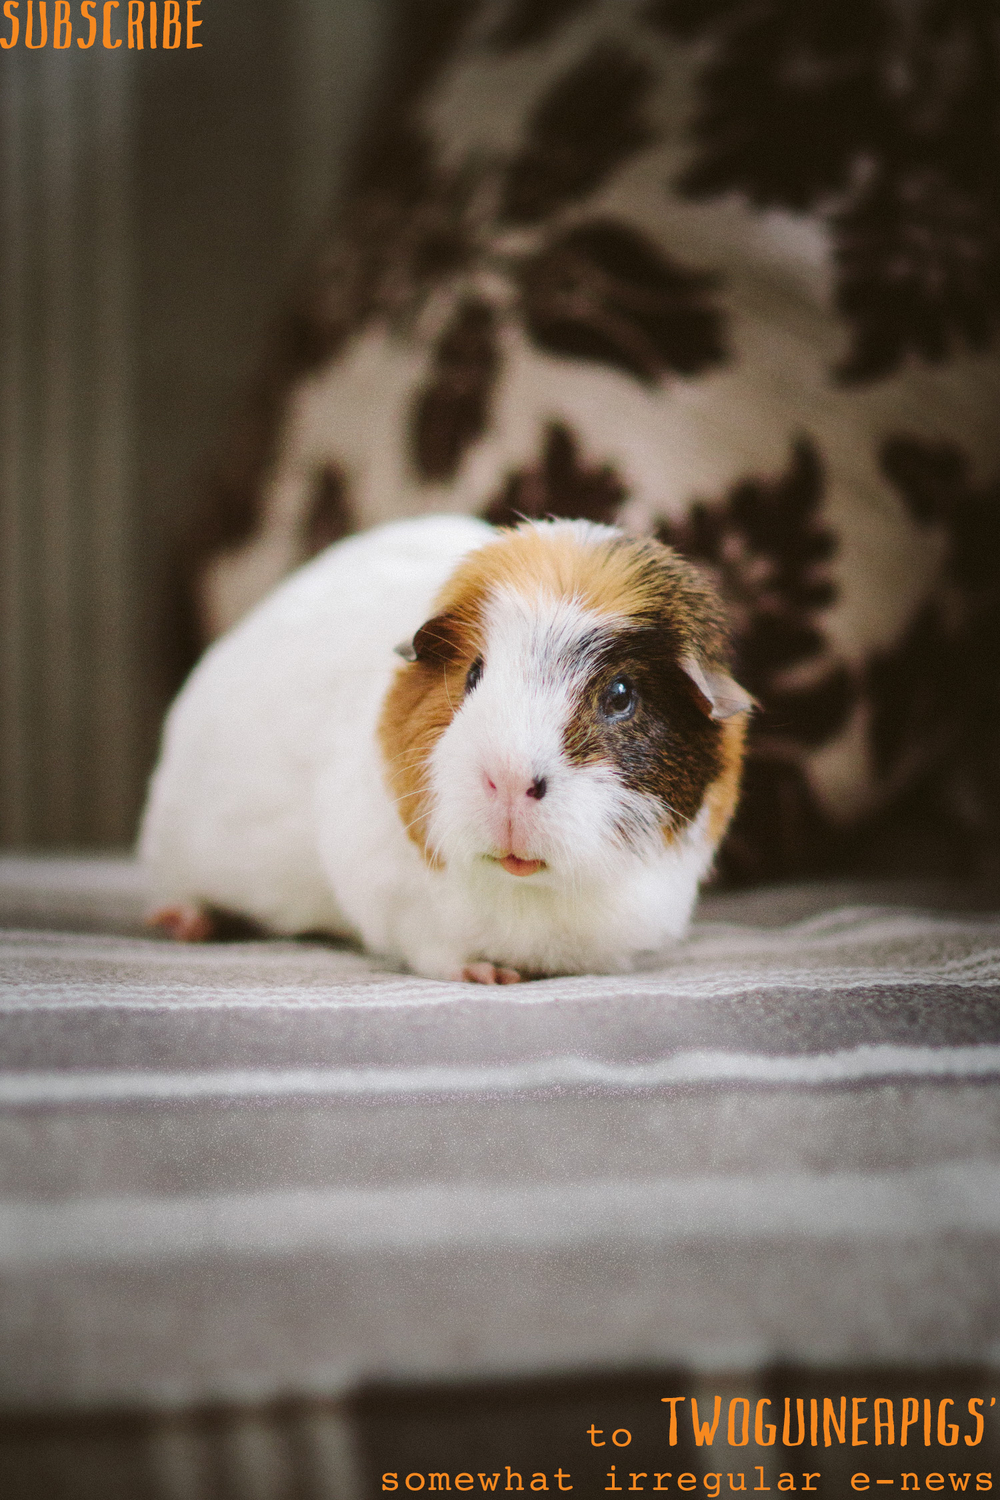 twoguineapigs_wiggley_guineapig_squarespace-2.jpg